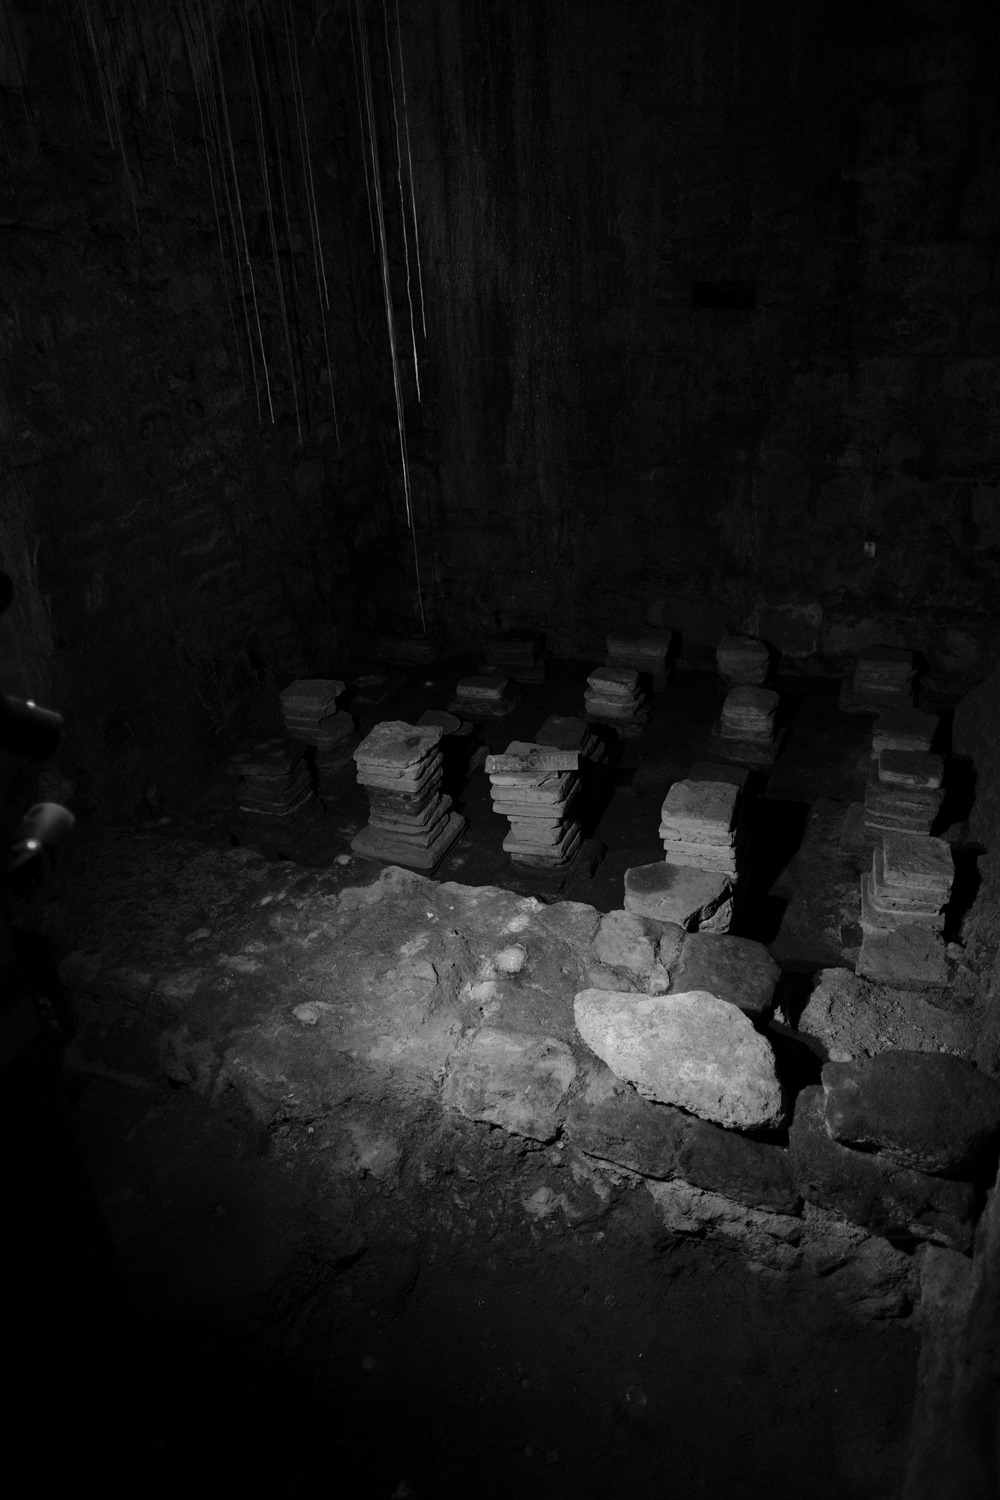 Another corner of a hypercaust system. The room is dark, with just a few stacks of bricks showing.